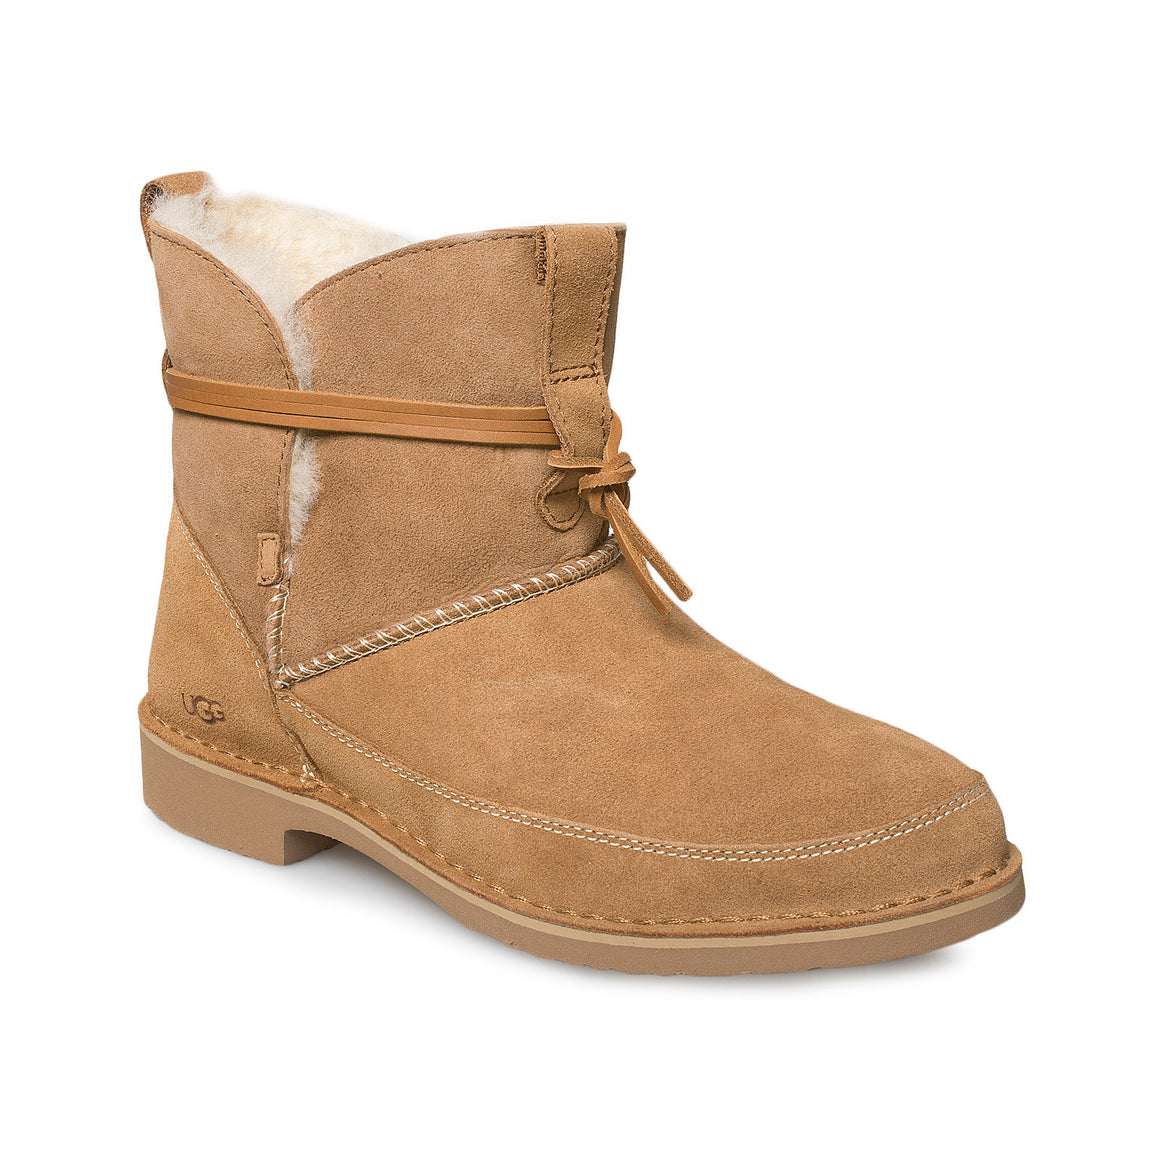 UGG Esther Chestnut Boots - Women's